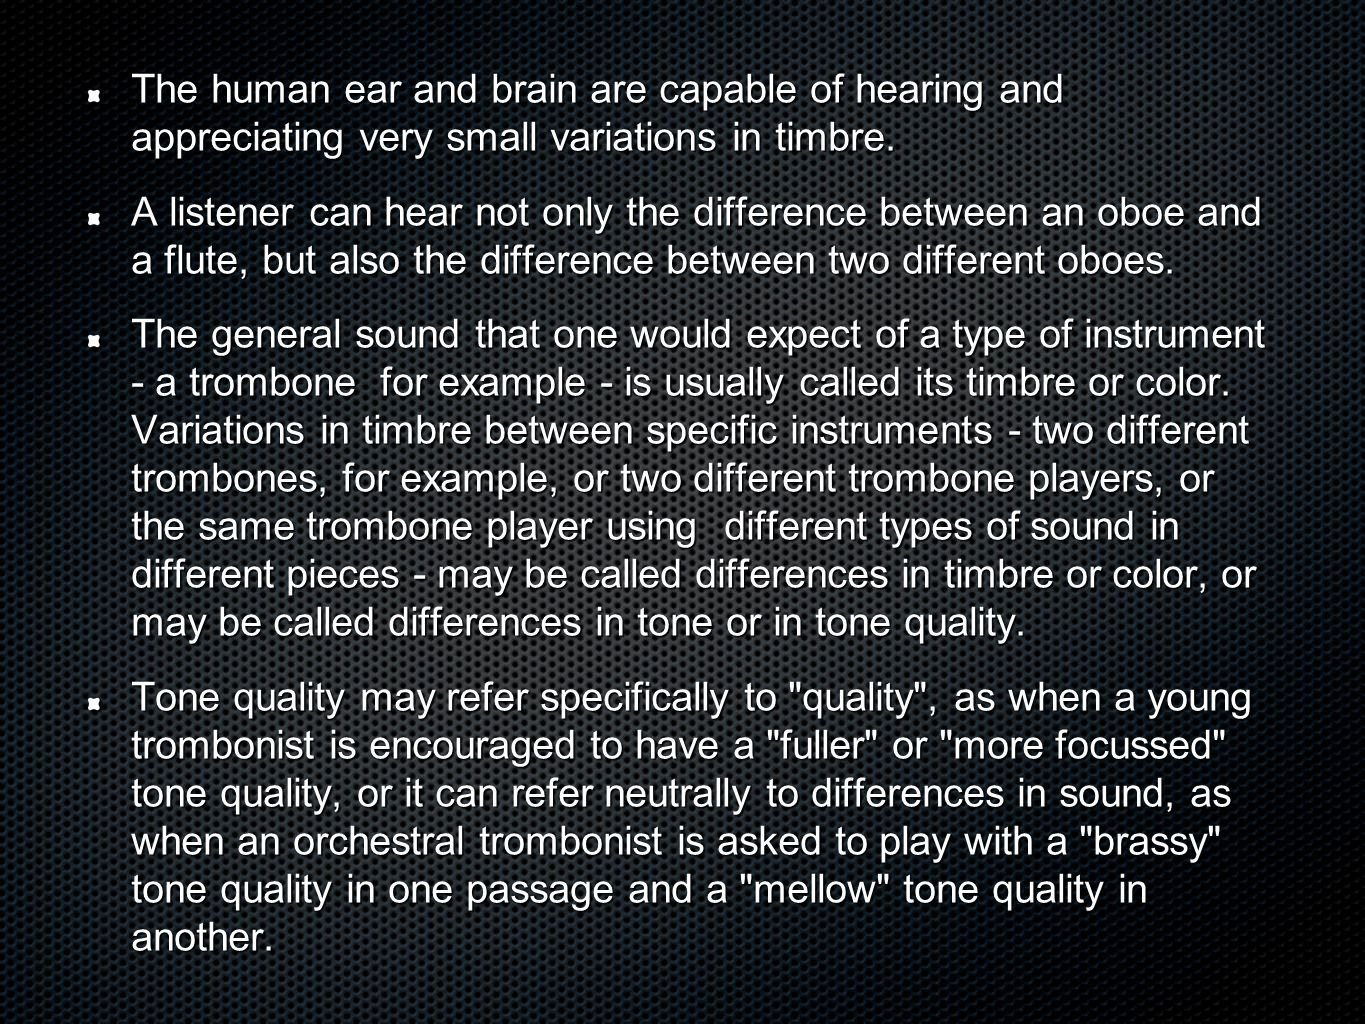 The human ear and brain are capable of hearing and appreciating very small variations in timbre.